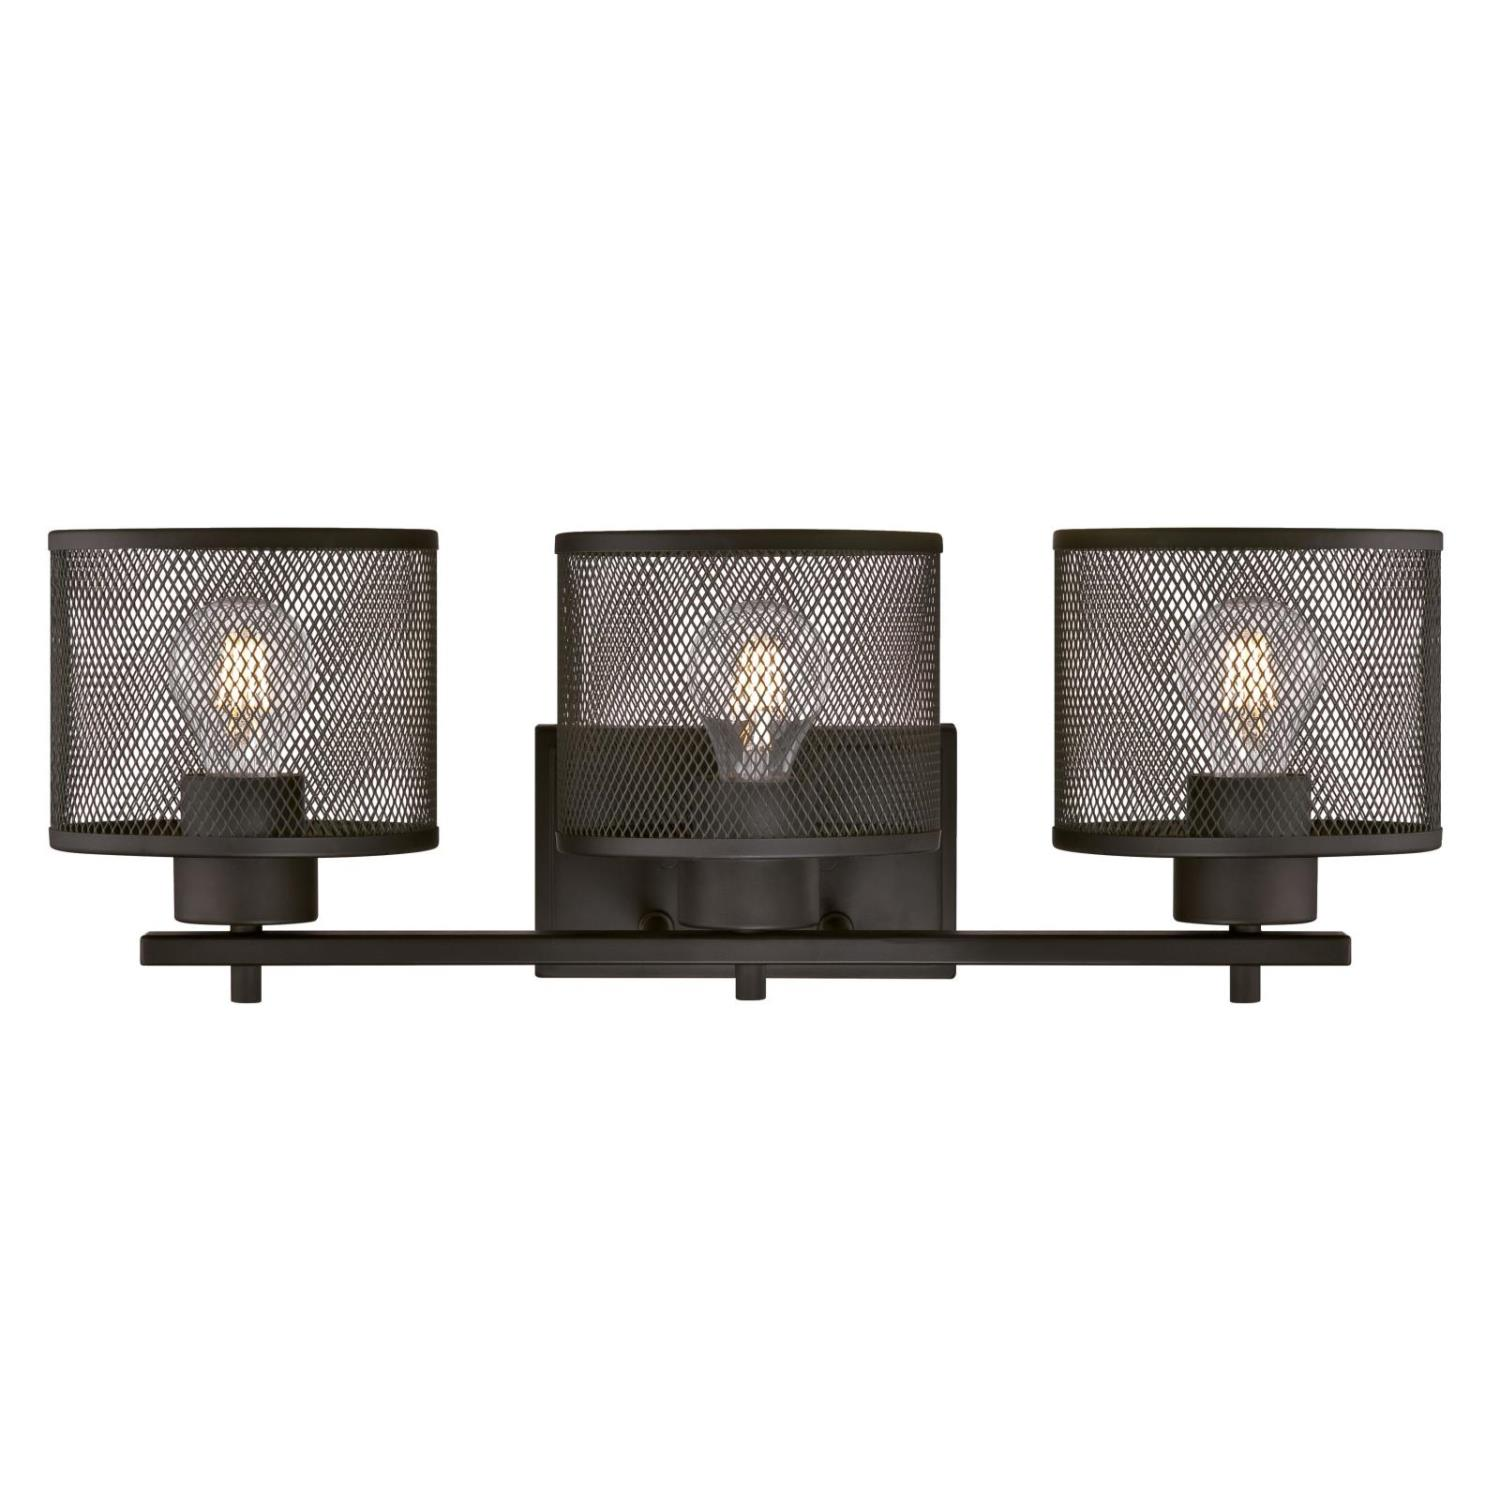 3 Light Wall Fixture Oil Rubbed Bronze Finish with Mesh Shades